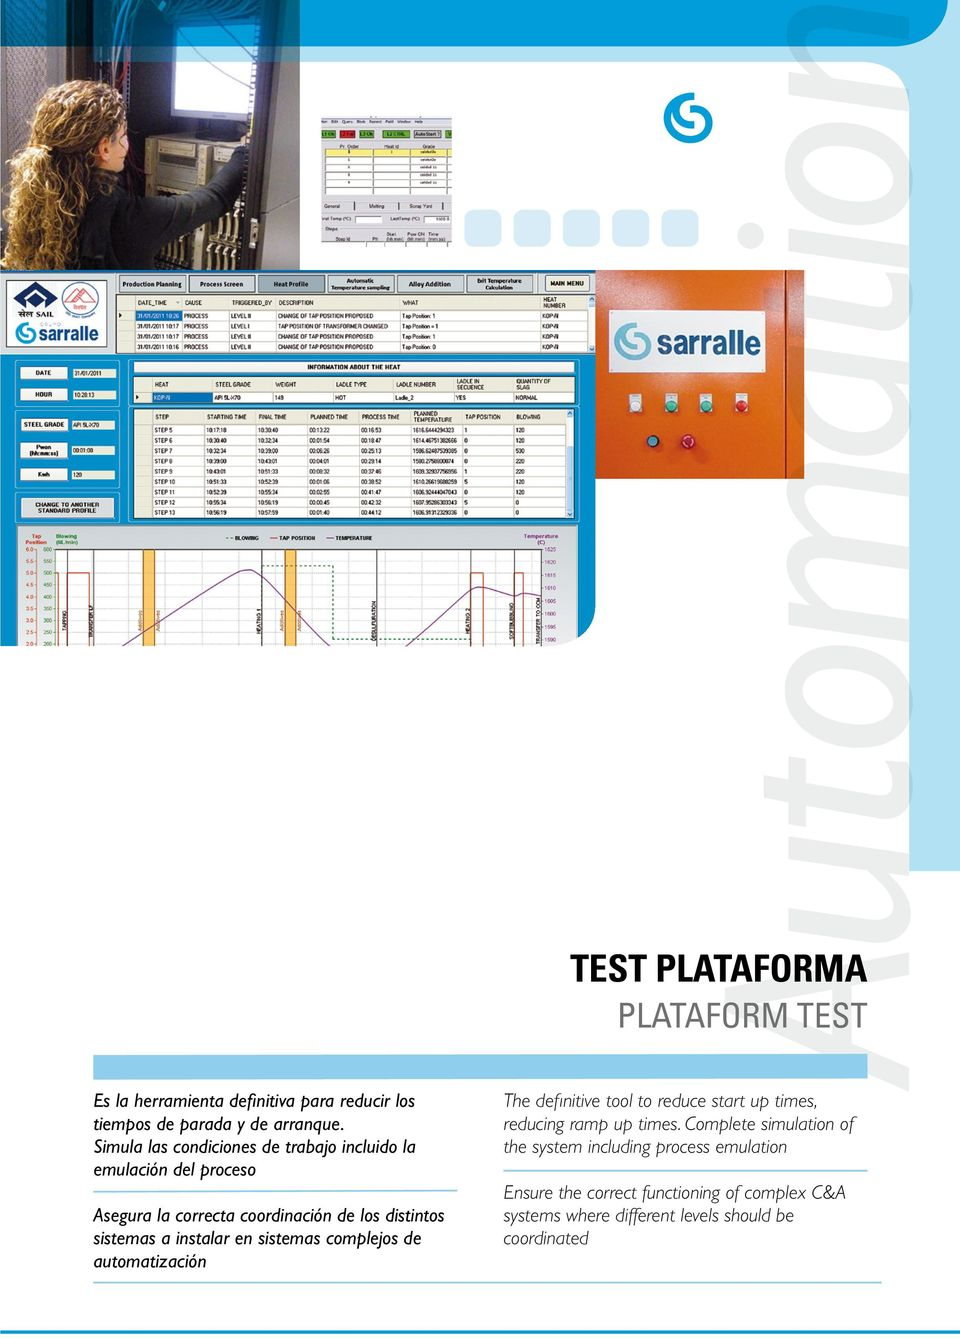 instalar en sistemas complejos de automatización Automation TEST PLATAFORMA PLATAFORM TEST The definitive tool to reduce start up